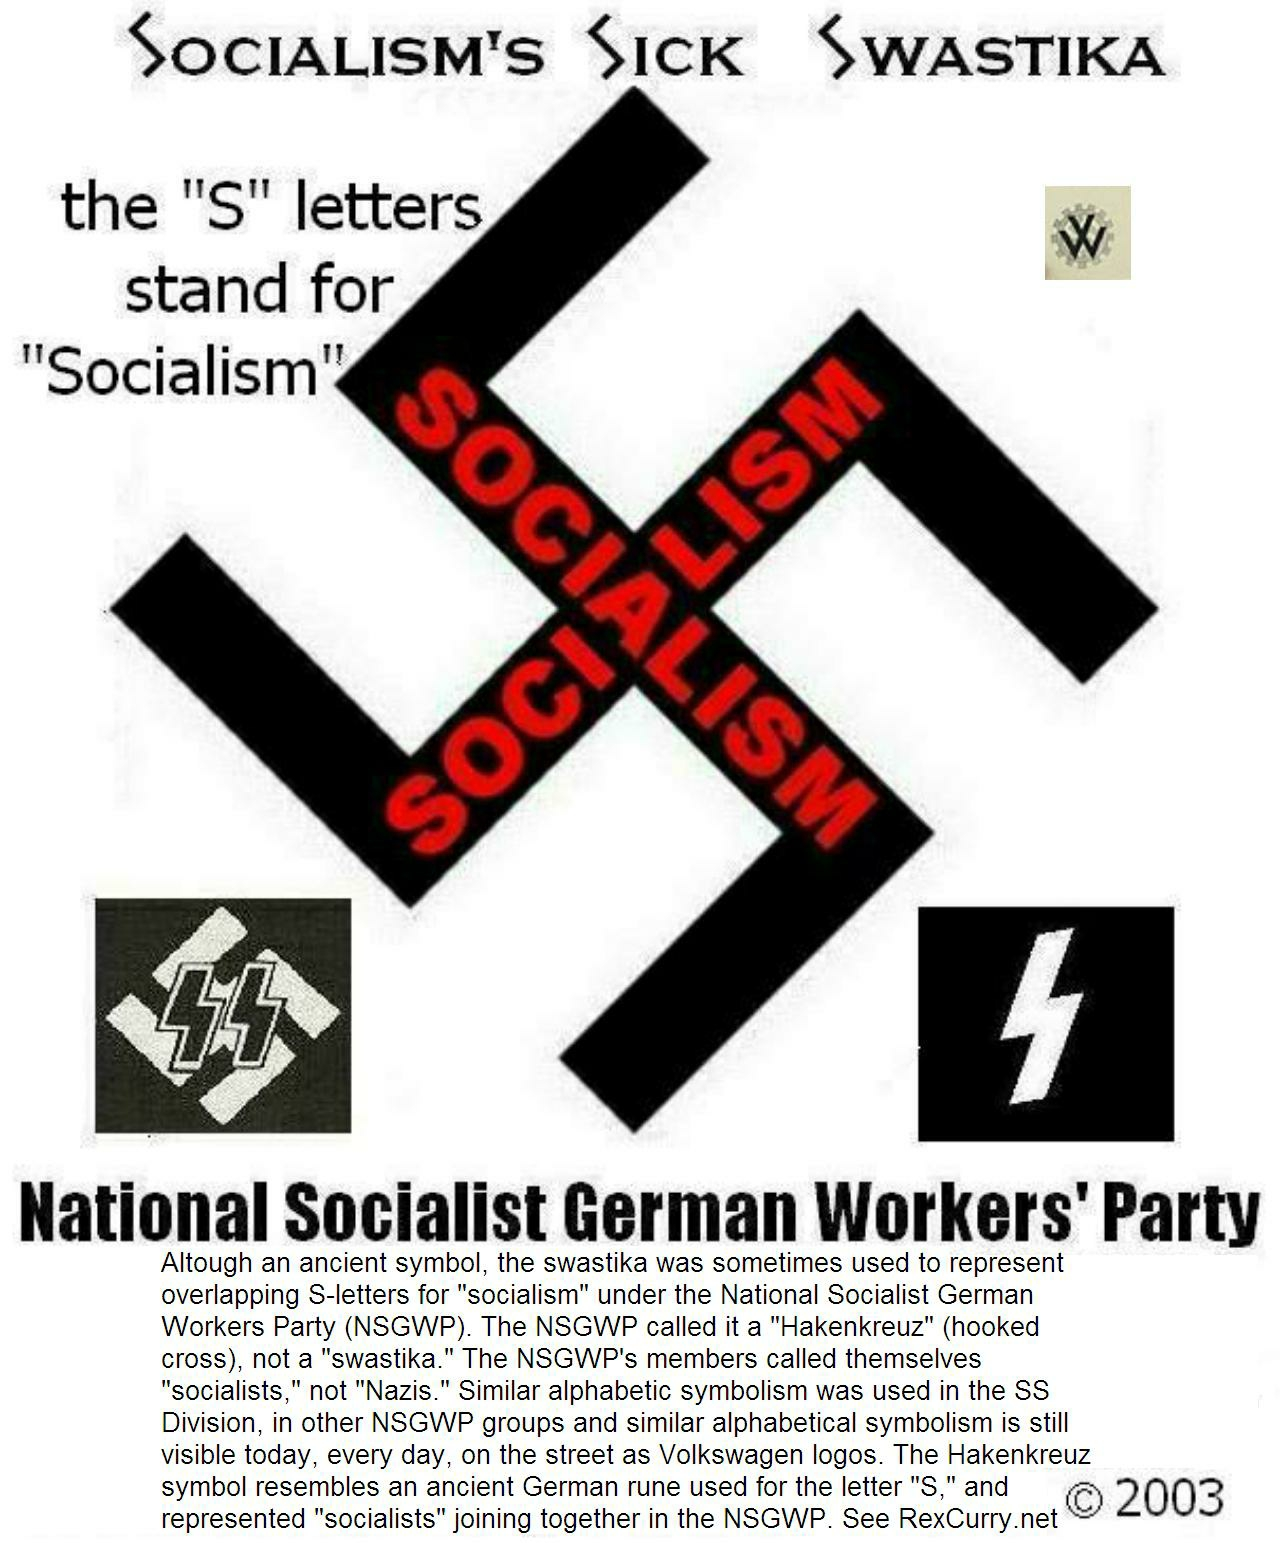 Daniel Ruth Tampa Tribune was educated by RexCurry.net about the sick socialist swastika, ditto for Elaine Silvestrini